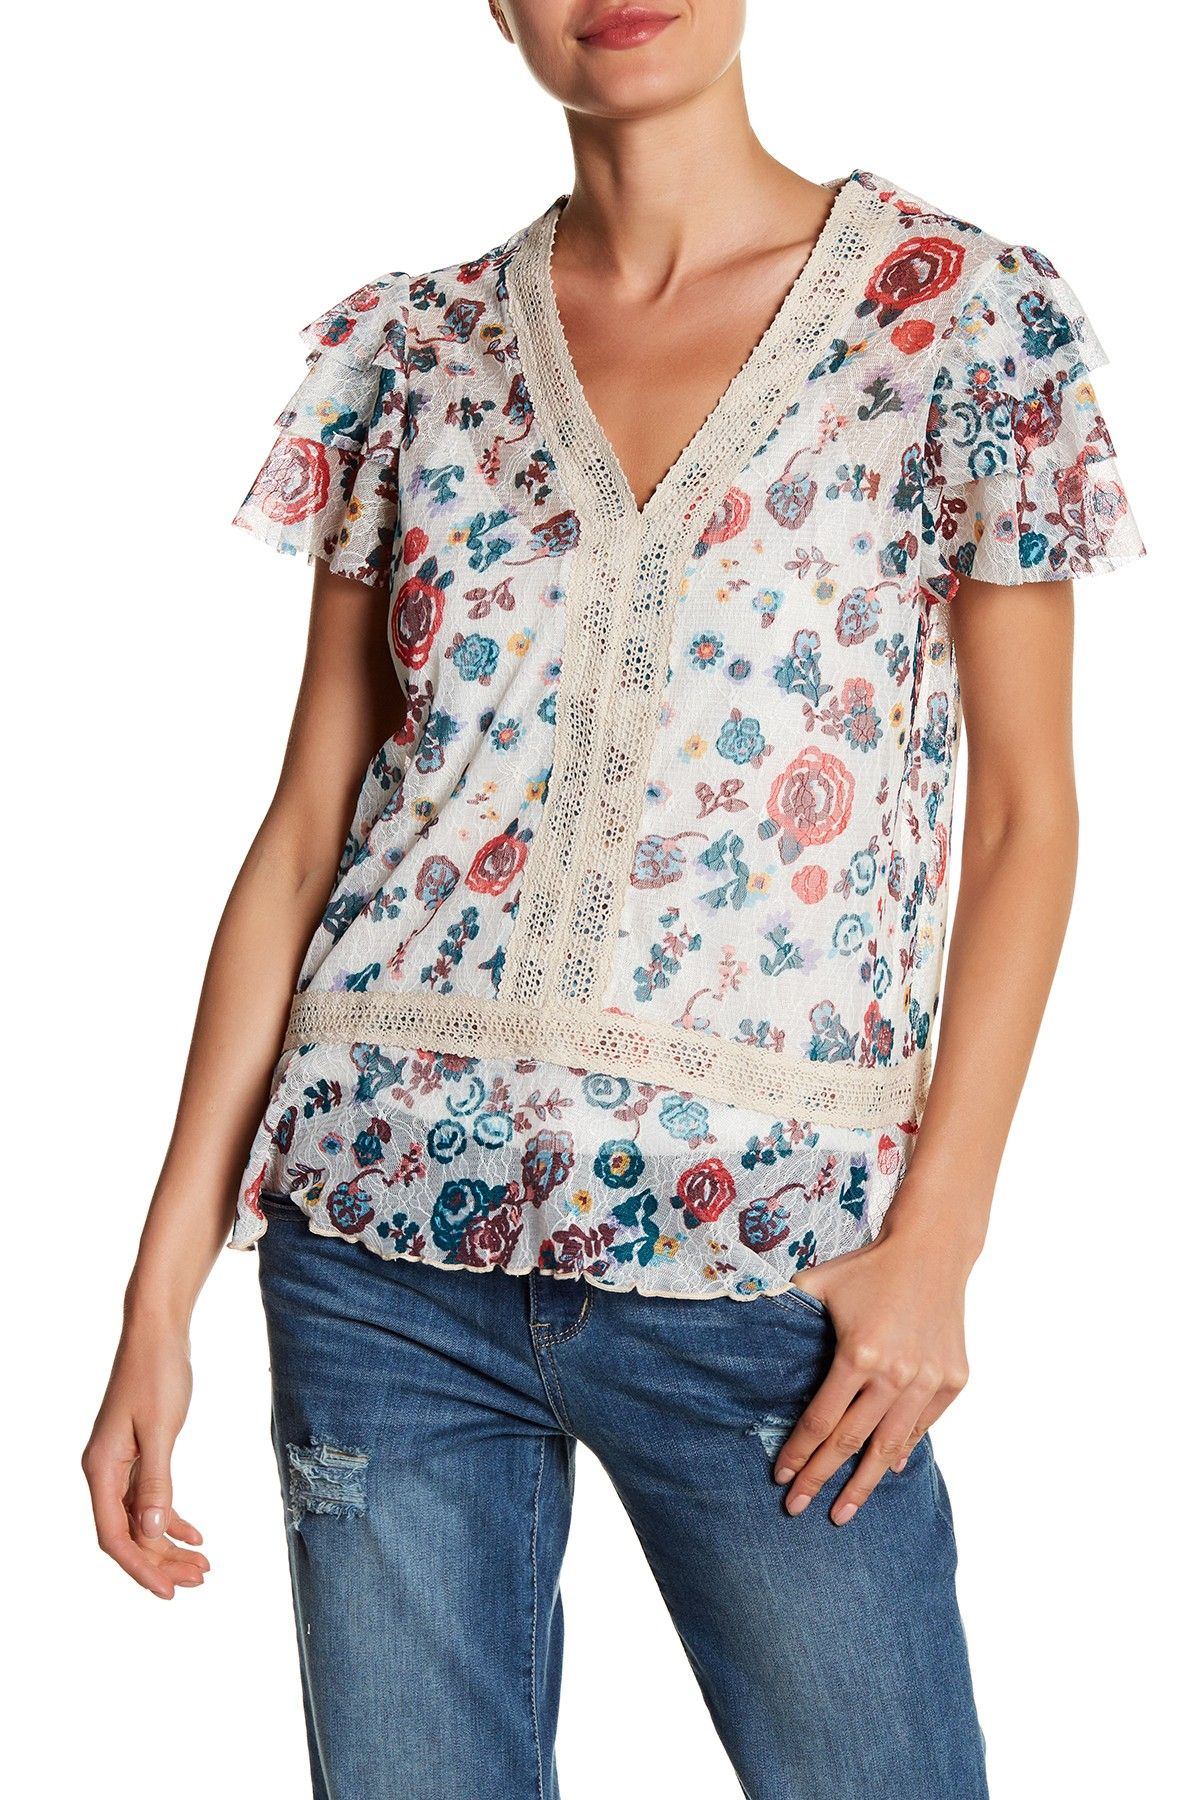 Flannel shirt apron  VNeck Tiered Sleeve Lace Shirt  Products